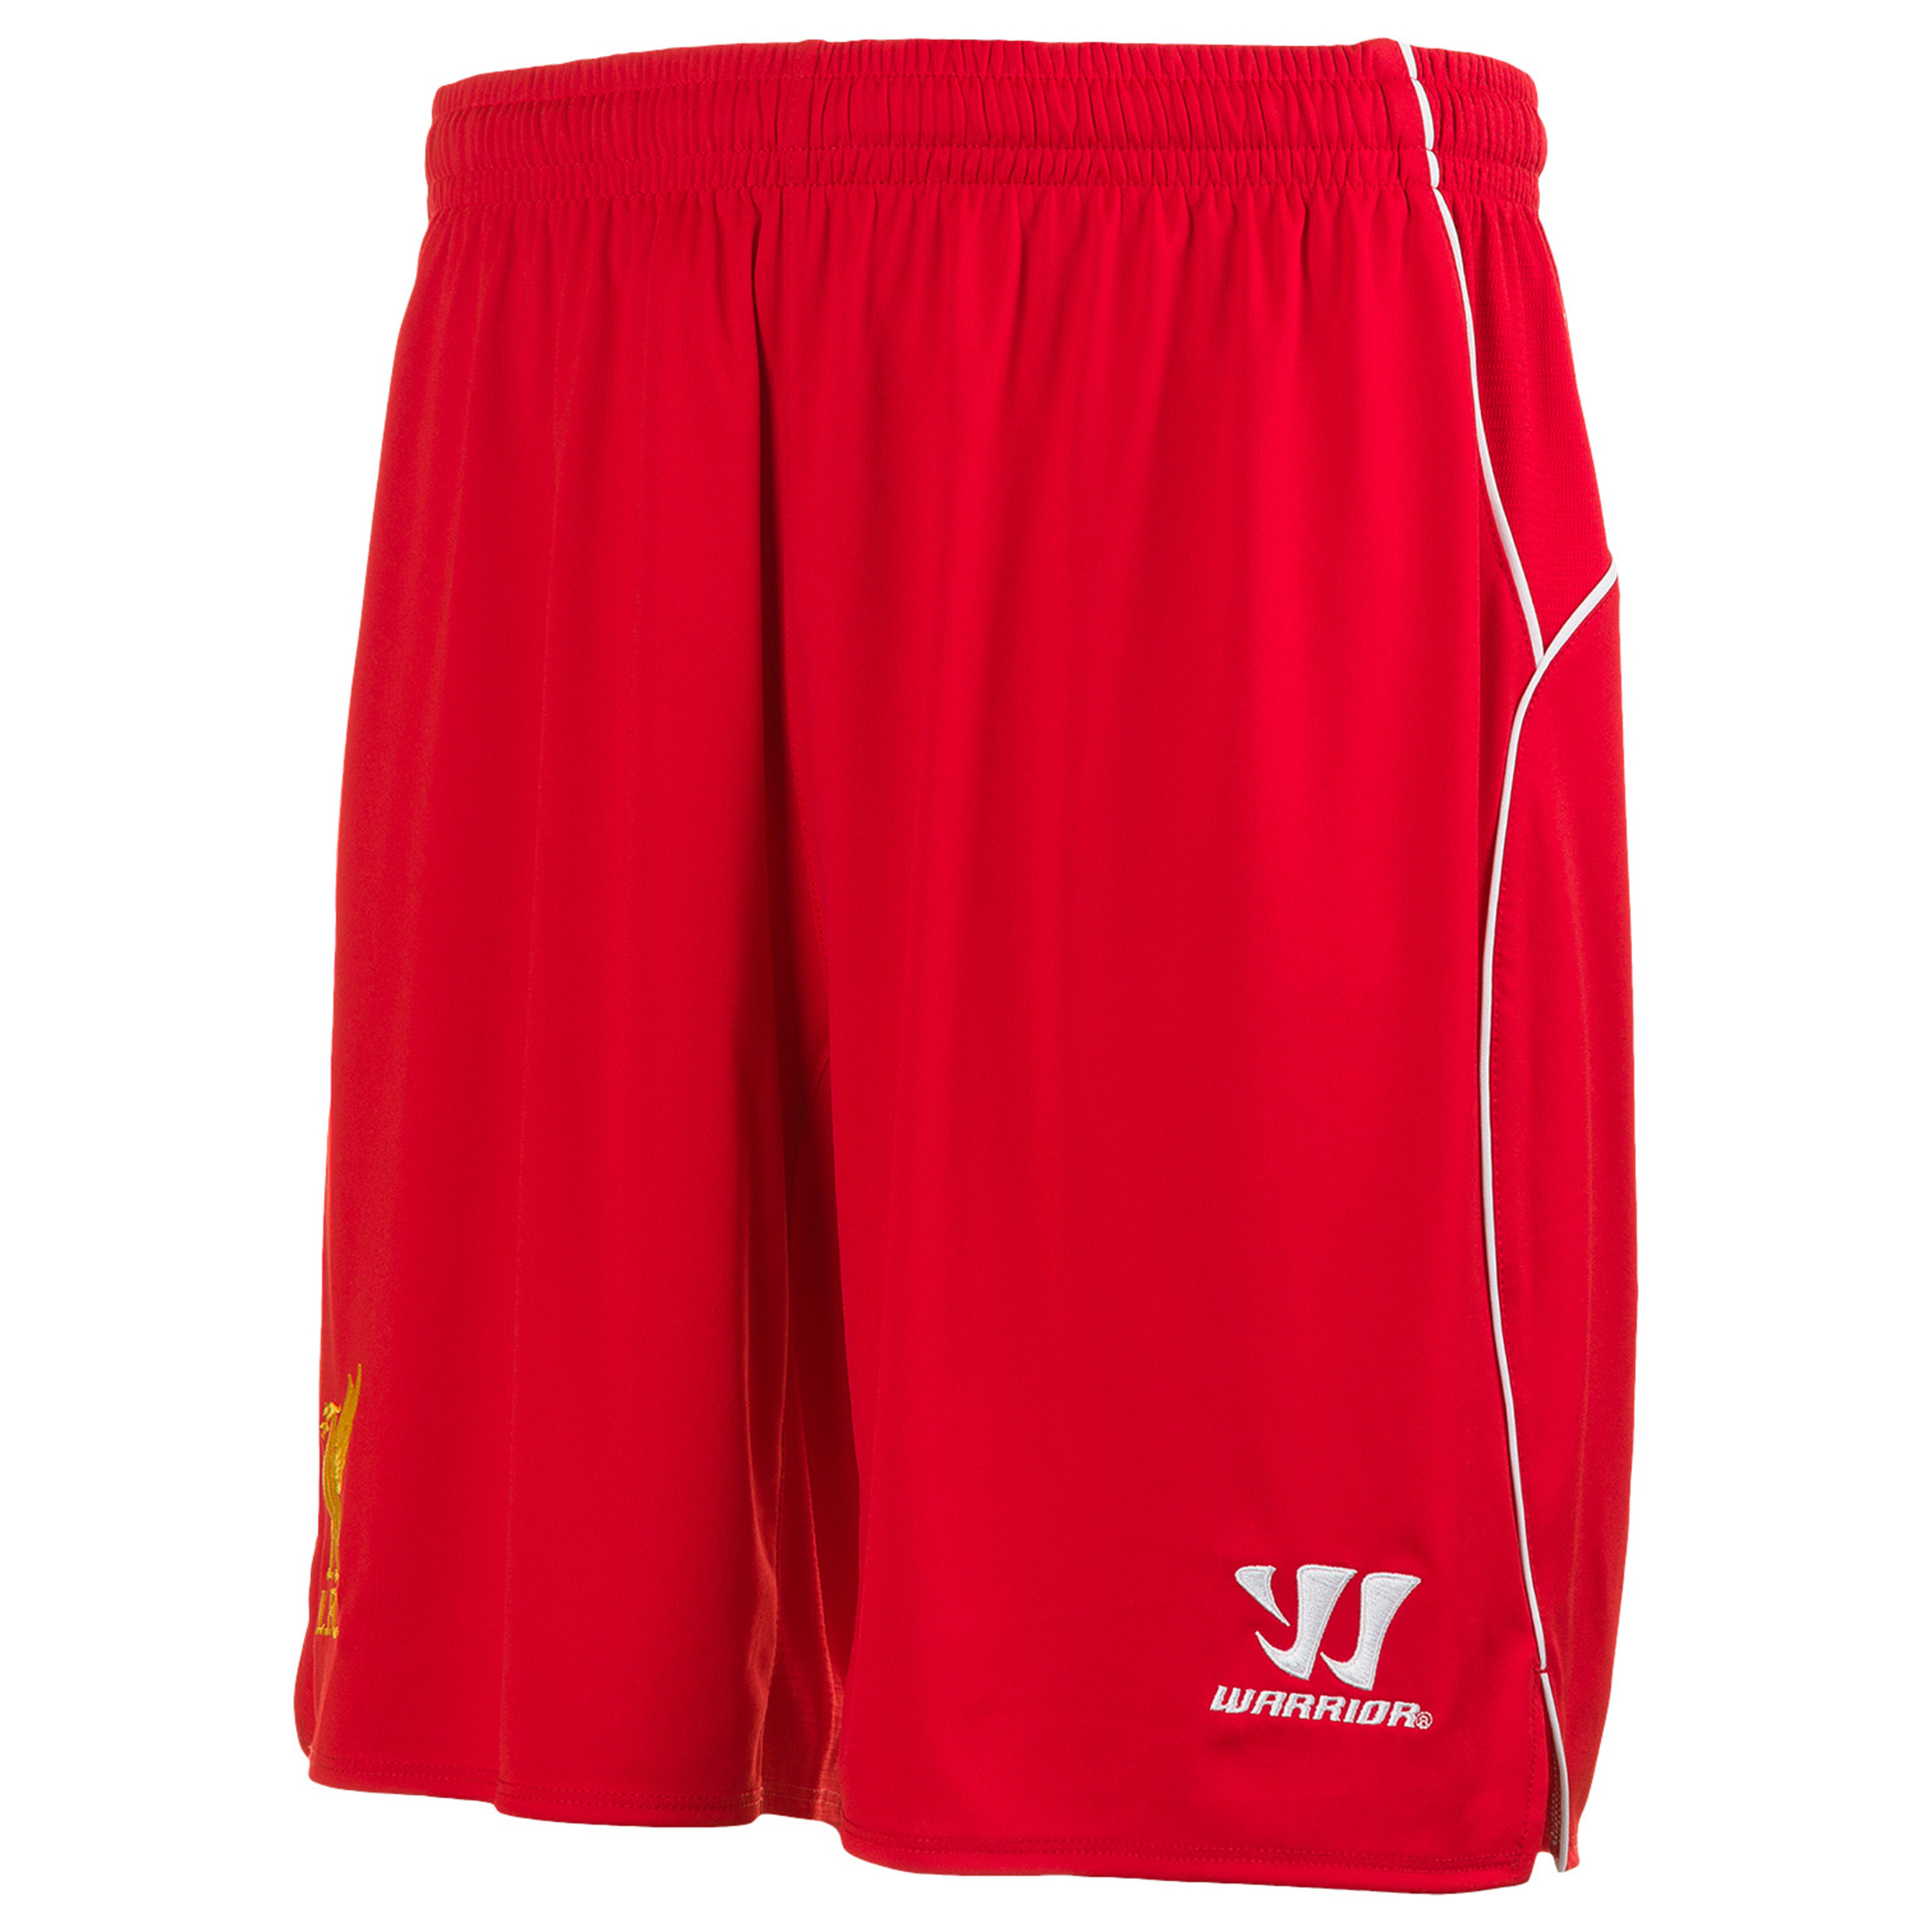 Liverpool Home Shorts 2014/15 Red